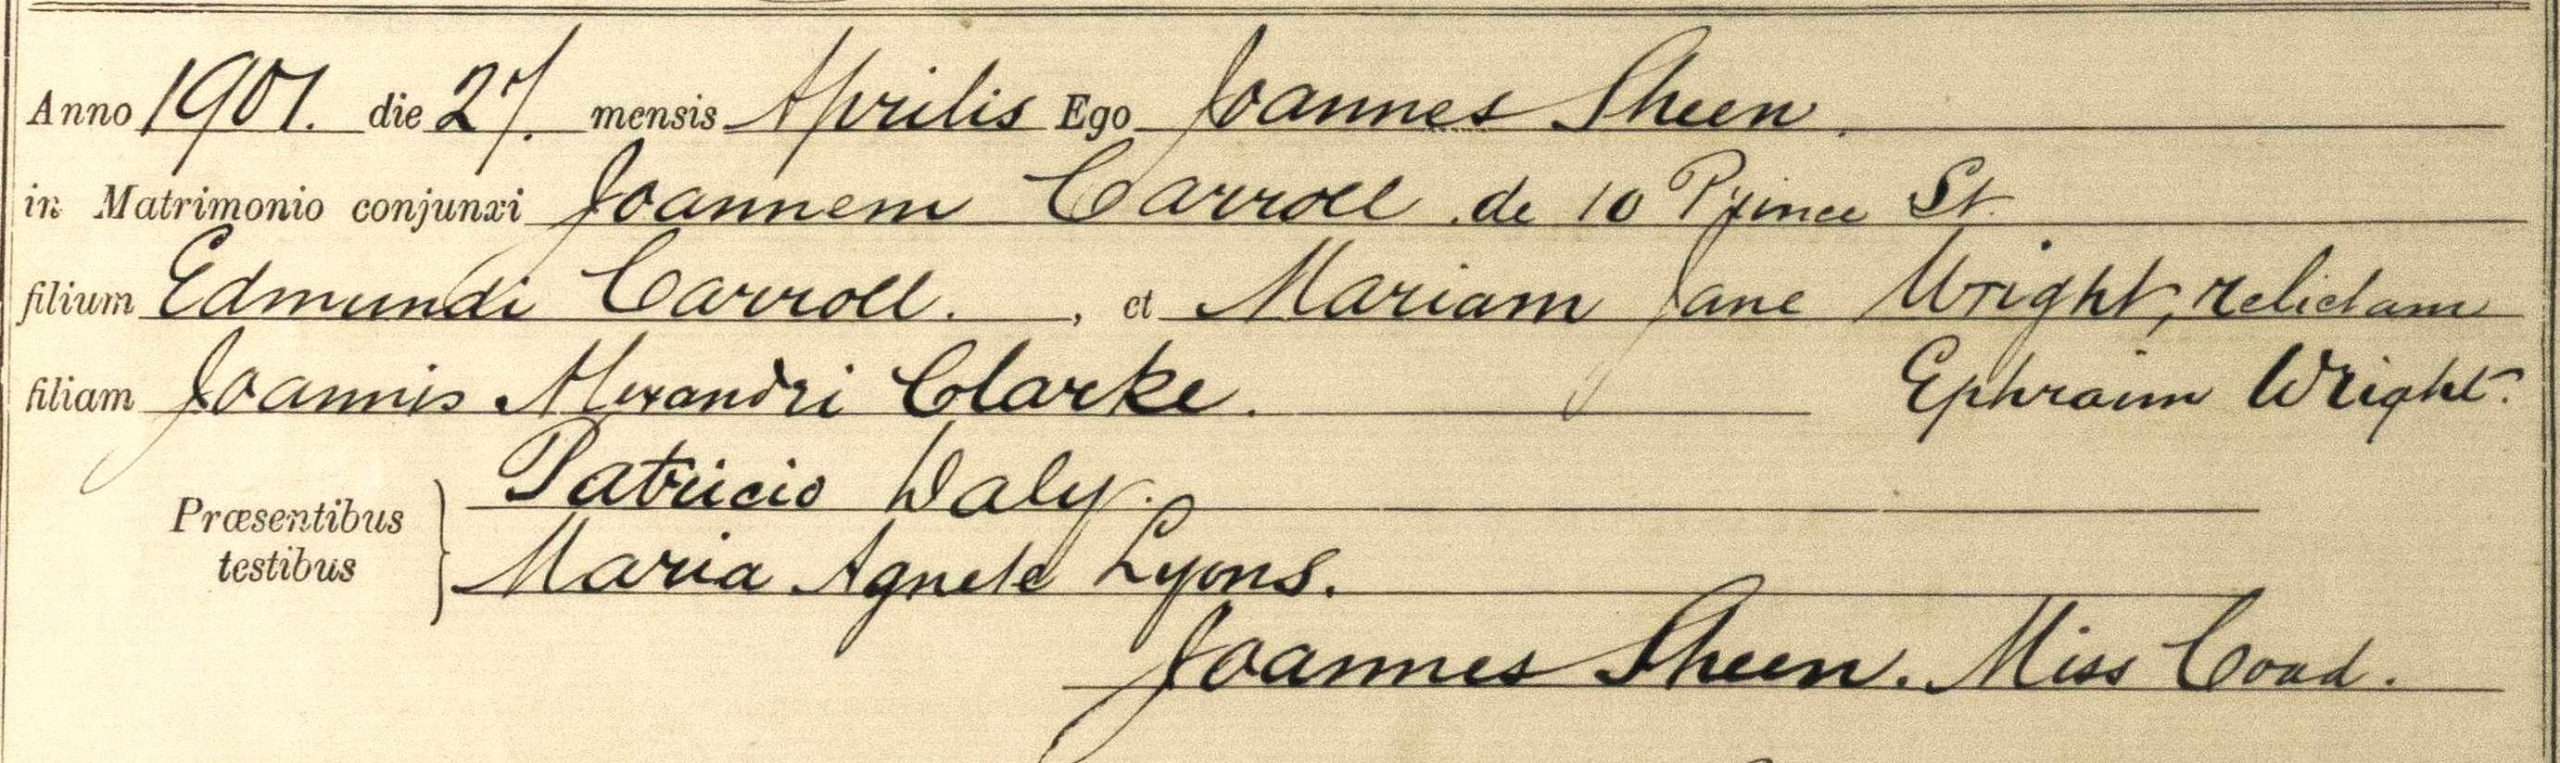 Marriage register entry for Joannem Carroll and Mariam Jane Wright, 27 April 1901, Church of the Assumption, Deptford